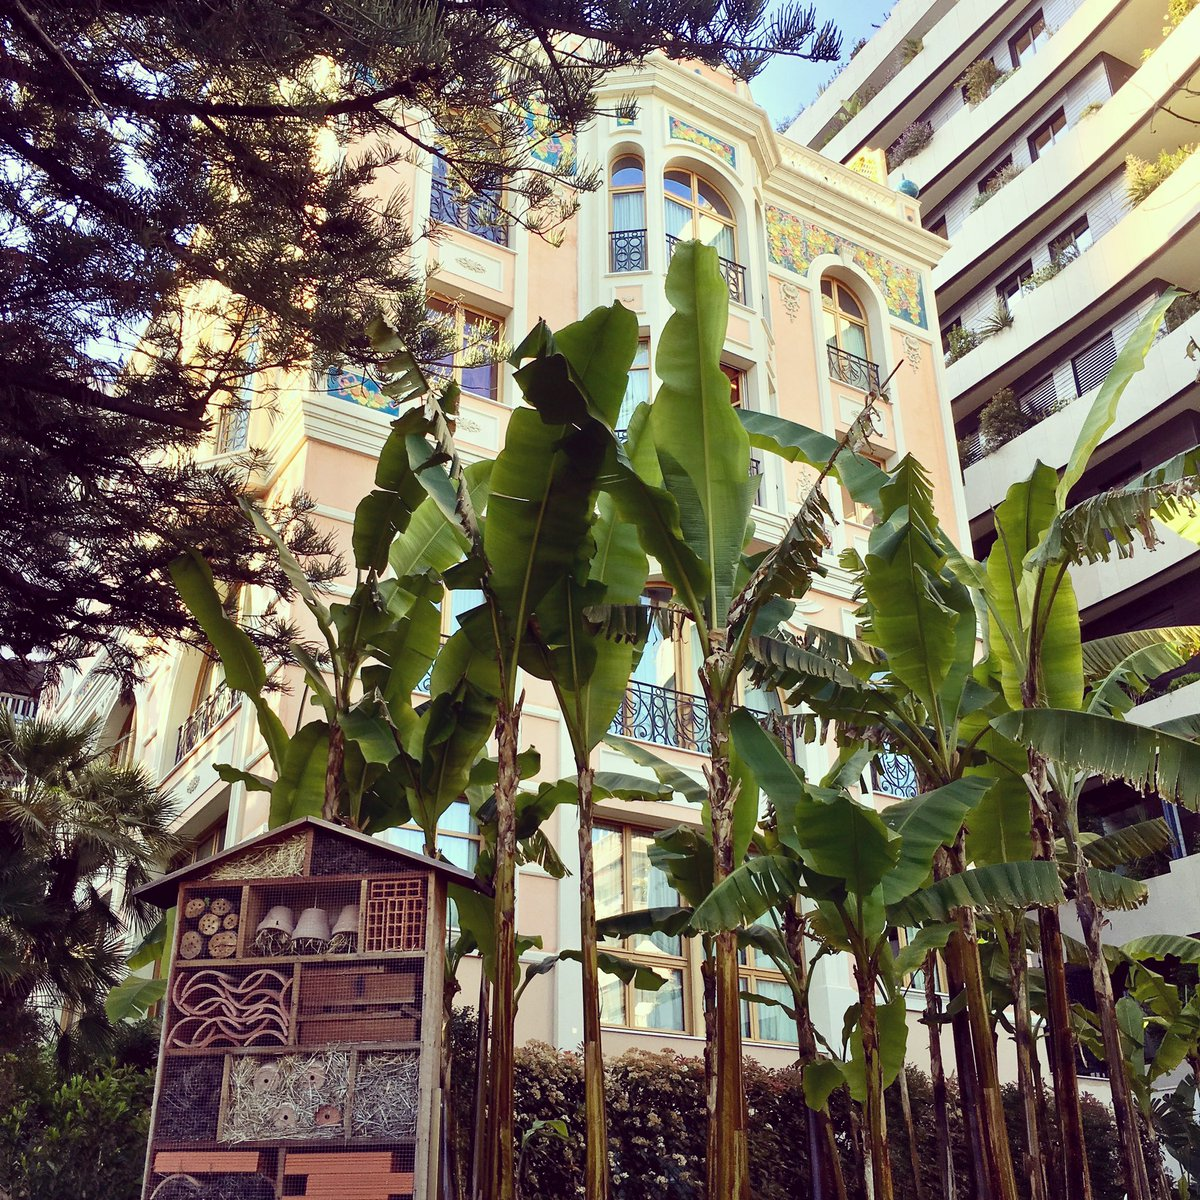 Small #house for #insects... yes, you found it  #realestate #fun #funny #montecarlo #monaco<br>http://pic.twitter.com/qJBD7Xhoba